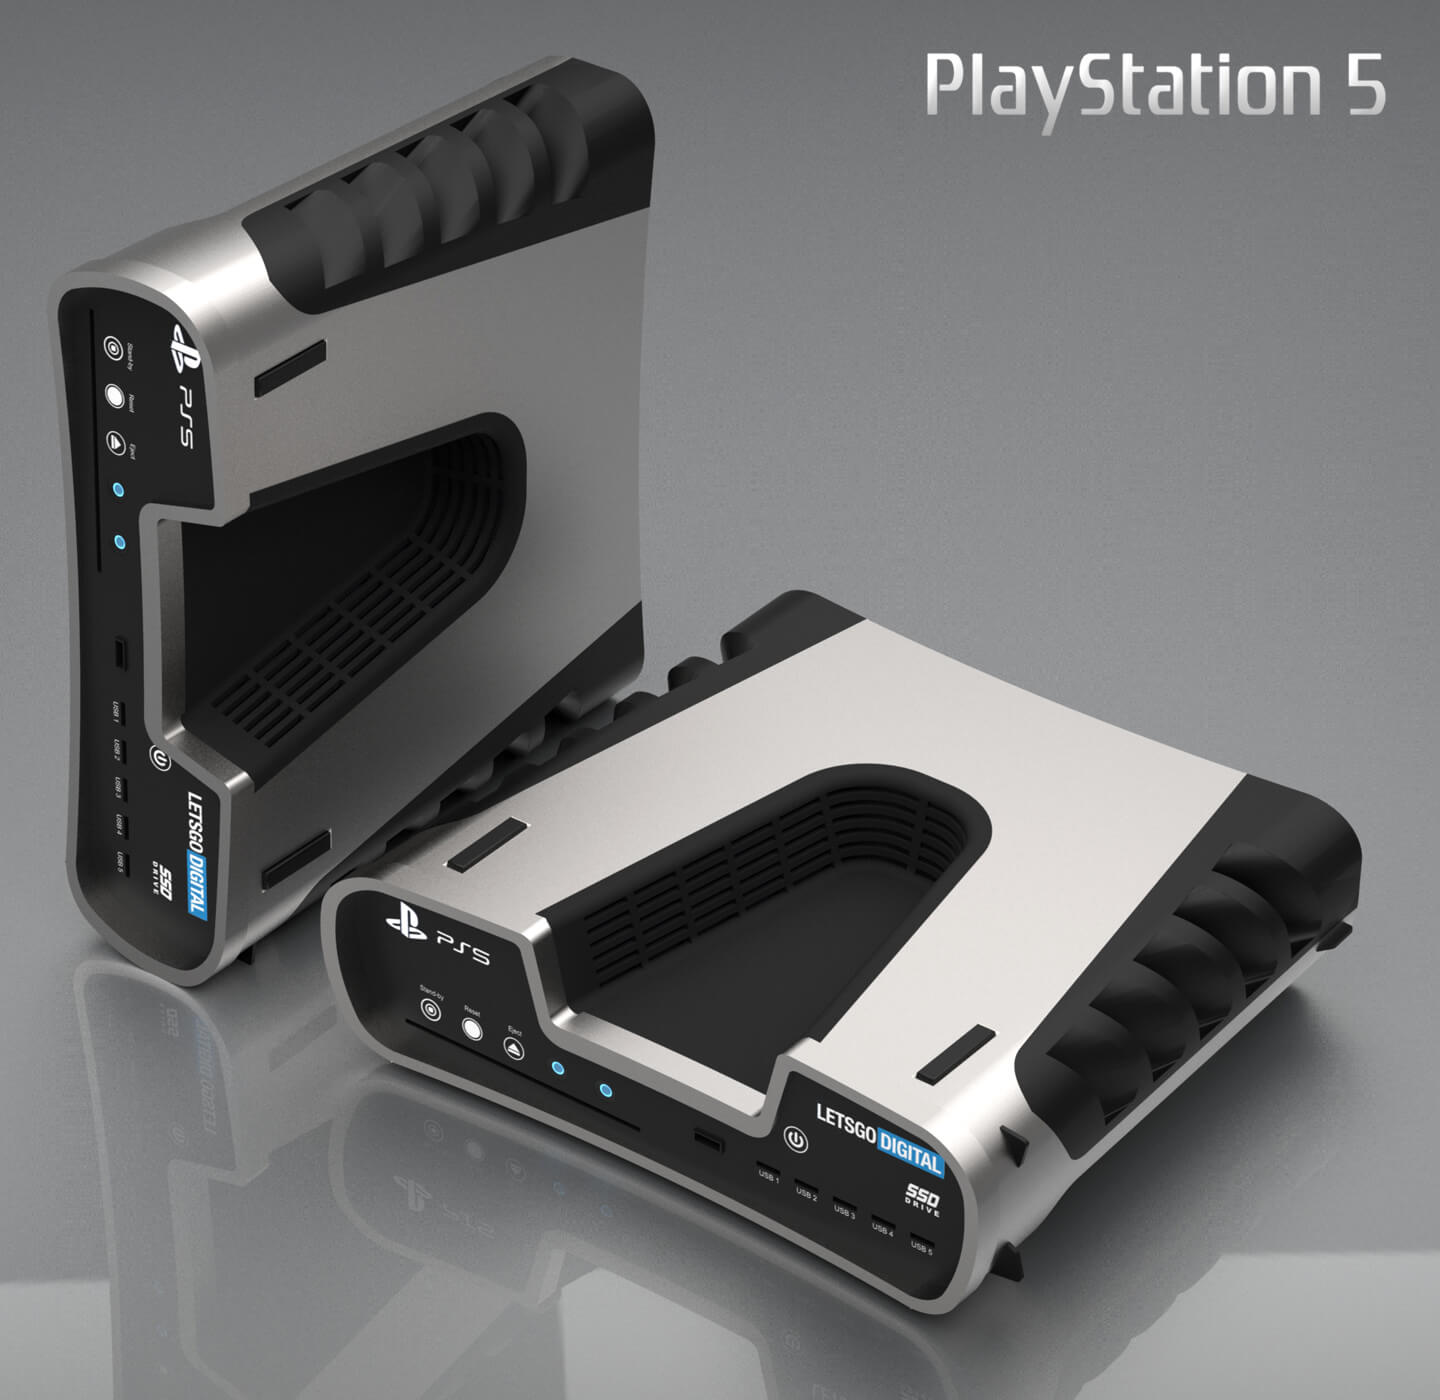 playstation 5 - photo #8